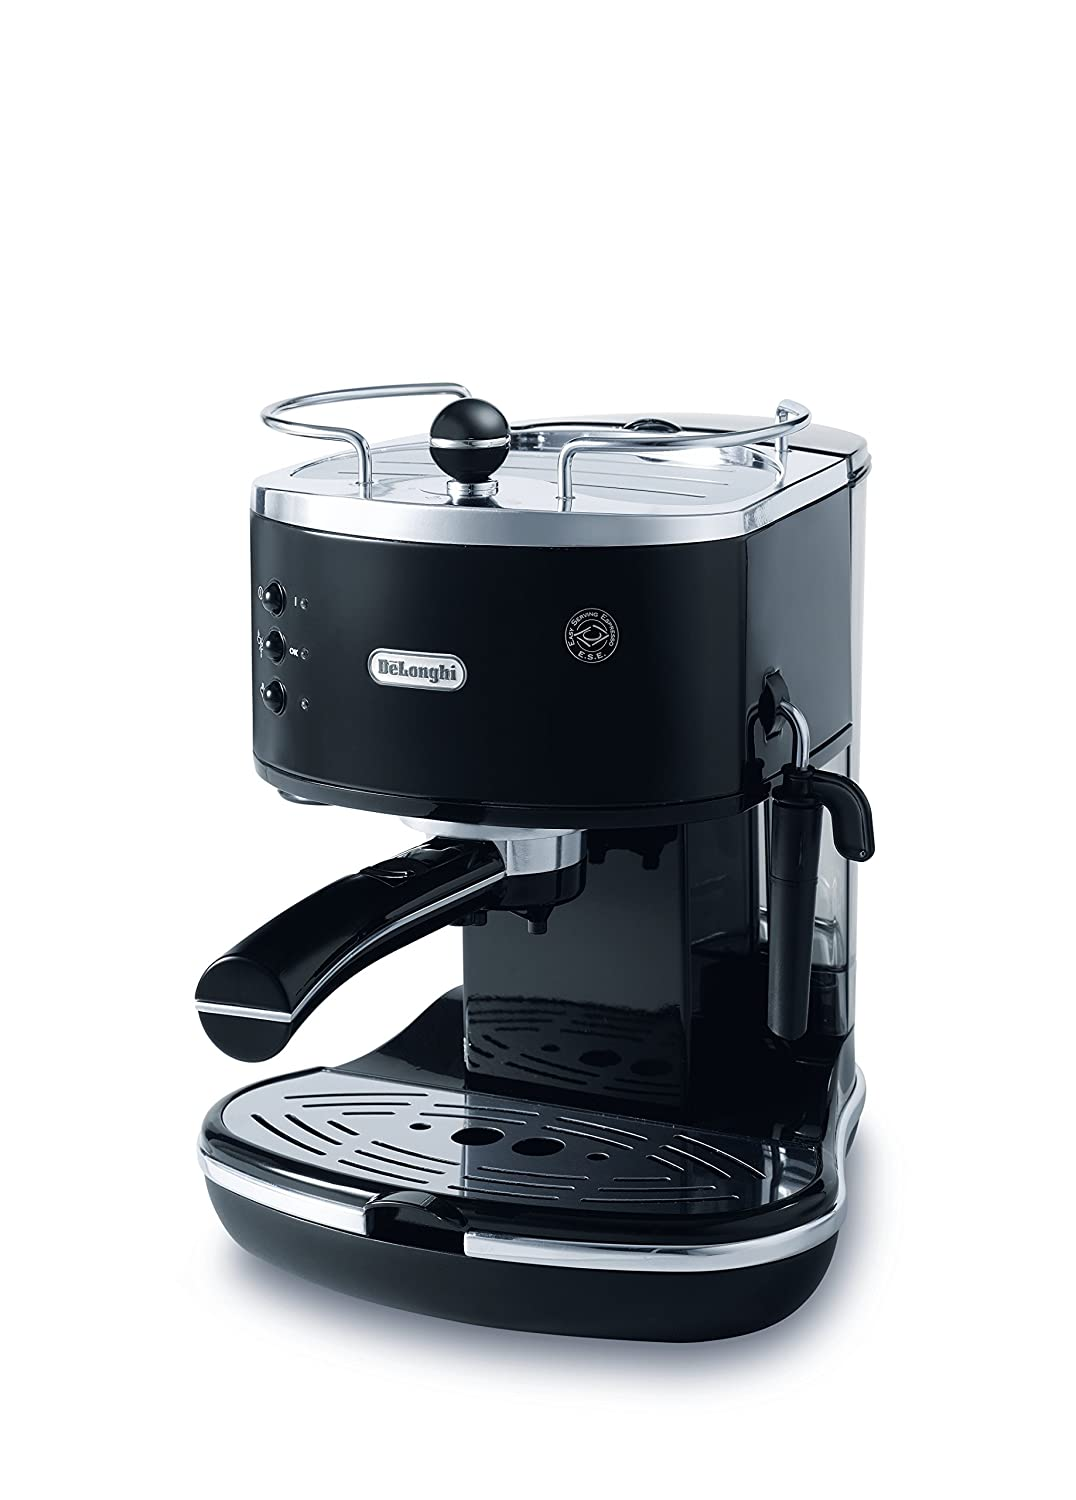 DeLonghi Icona Pump Espresso, Coffee Machine, ECO310BK, Black